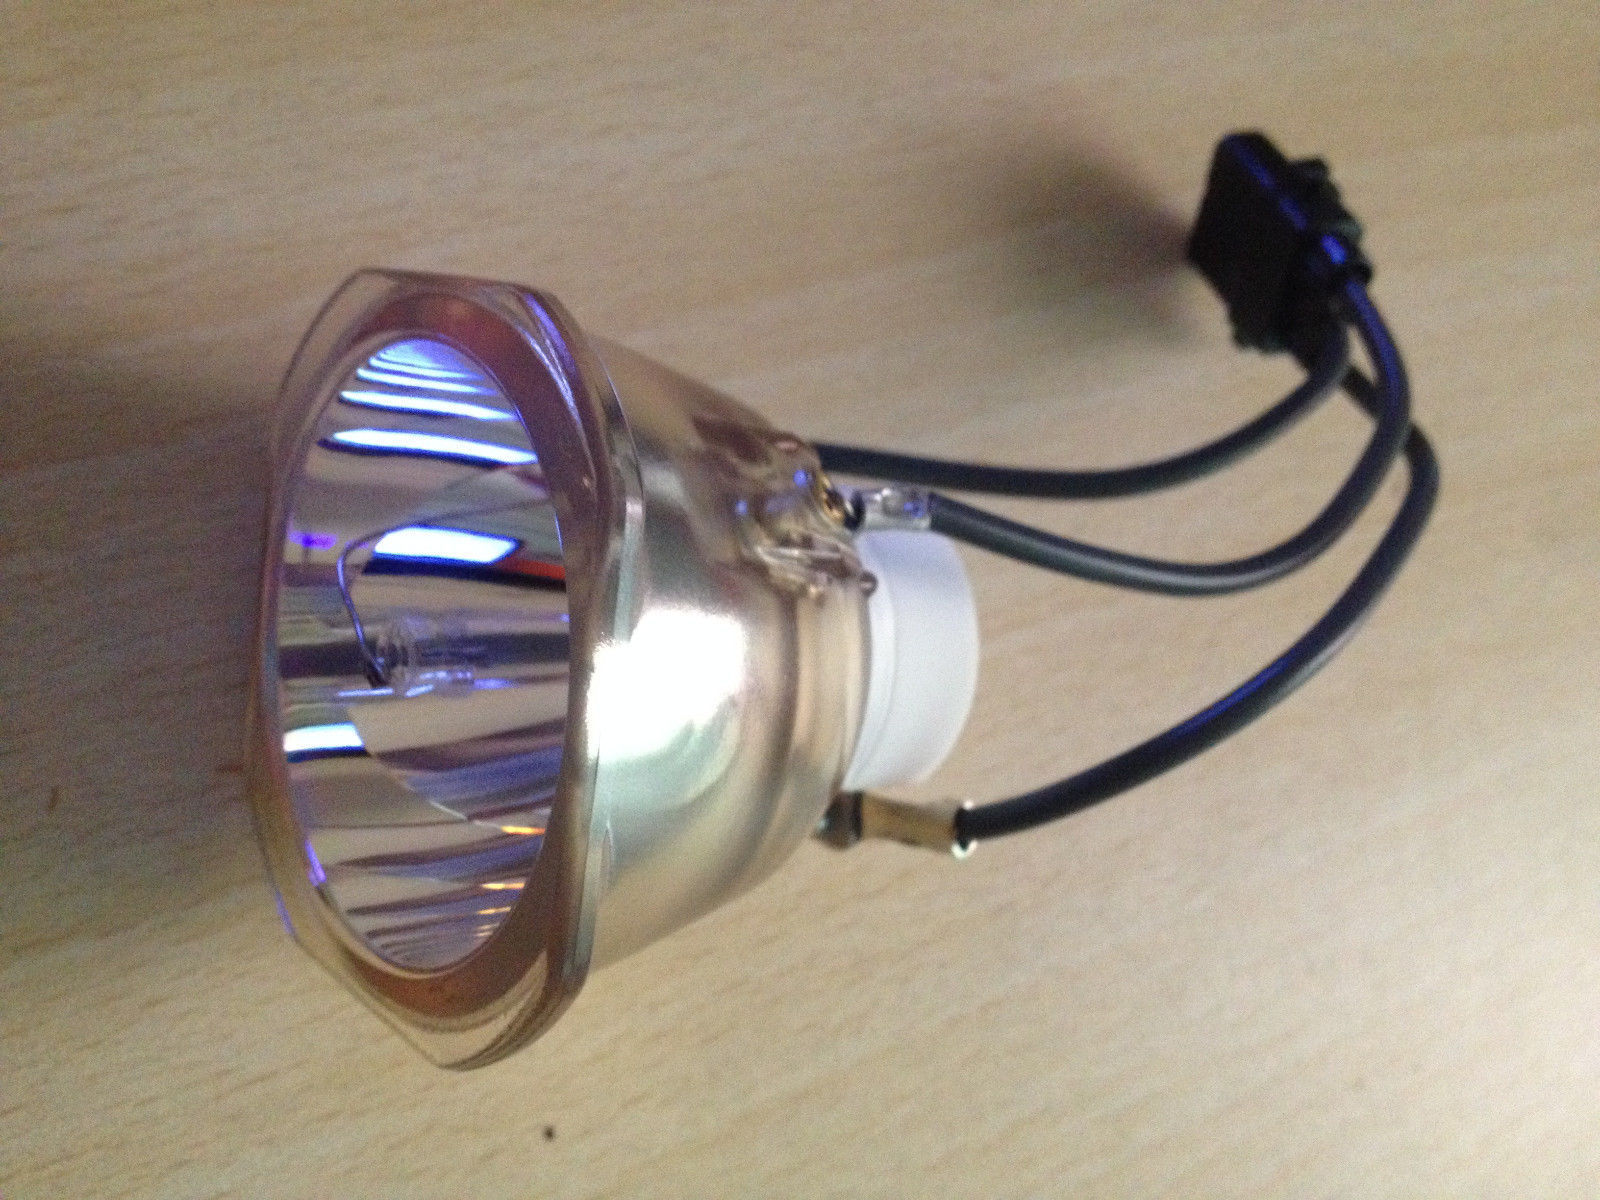 High quality Replacement Projector lamp bulb 6912B22008E AJ-LBX3A for LG electronic BX-277 BX277 BX327 BX-327 BX327-JD ect high quality replacement projector lg aj la50 lamp bulb for replacement lamp for lg rd jt20 rd jt21 projector